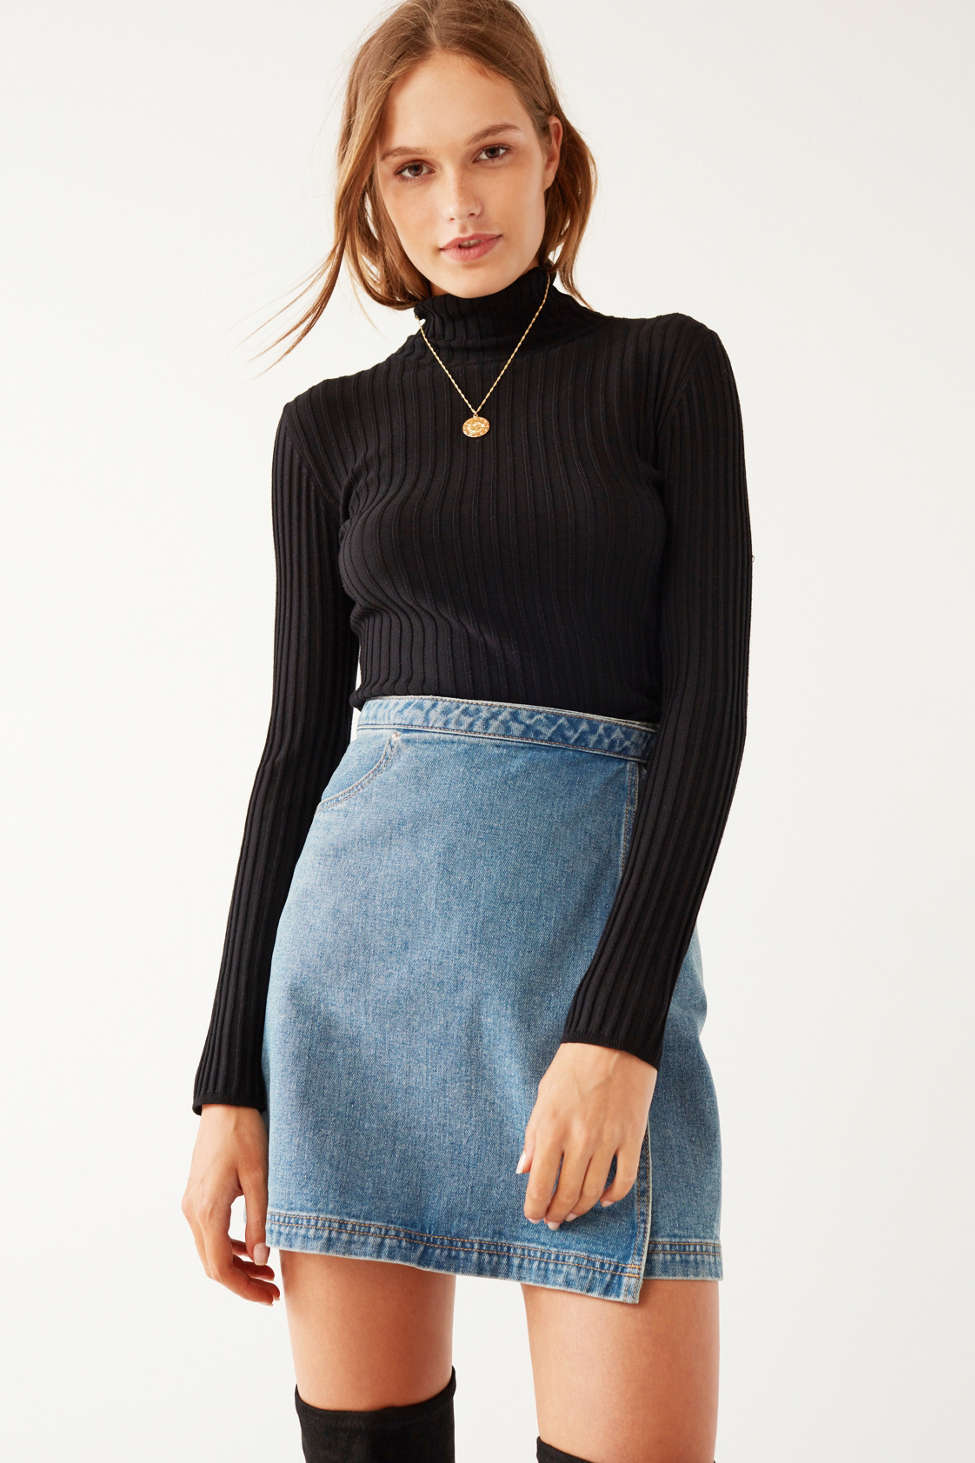 Silence   Noise Macy Ribbed Knit Turtleneck Sweater   Urban Outfitters